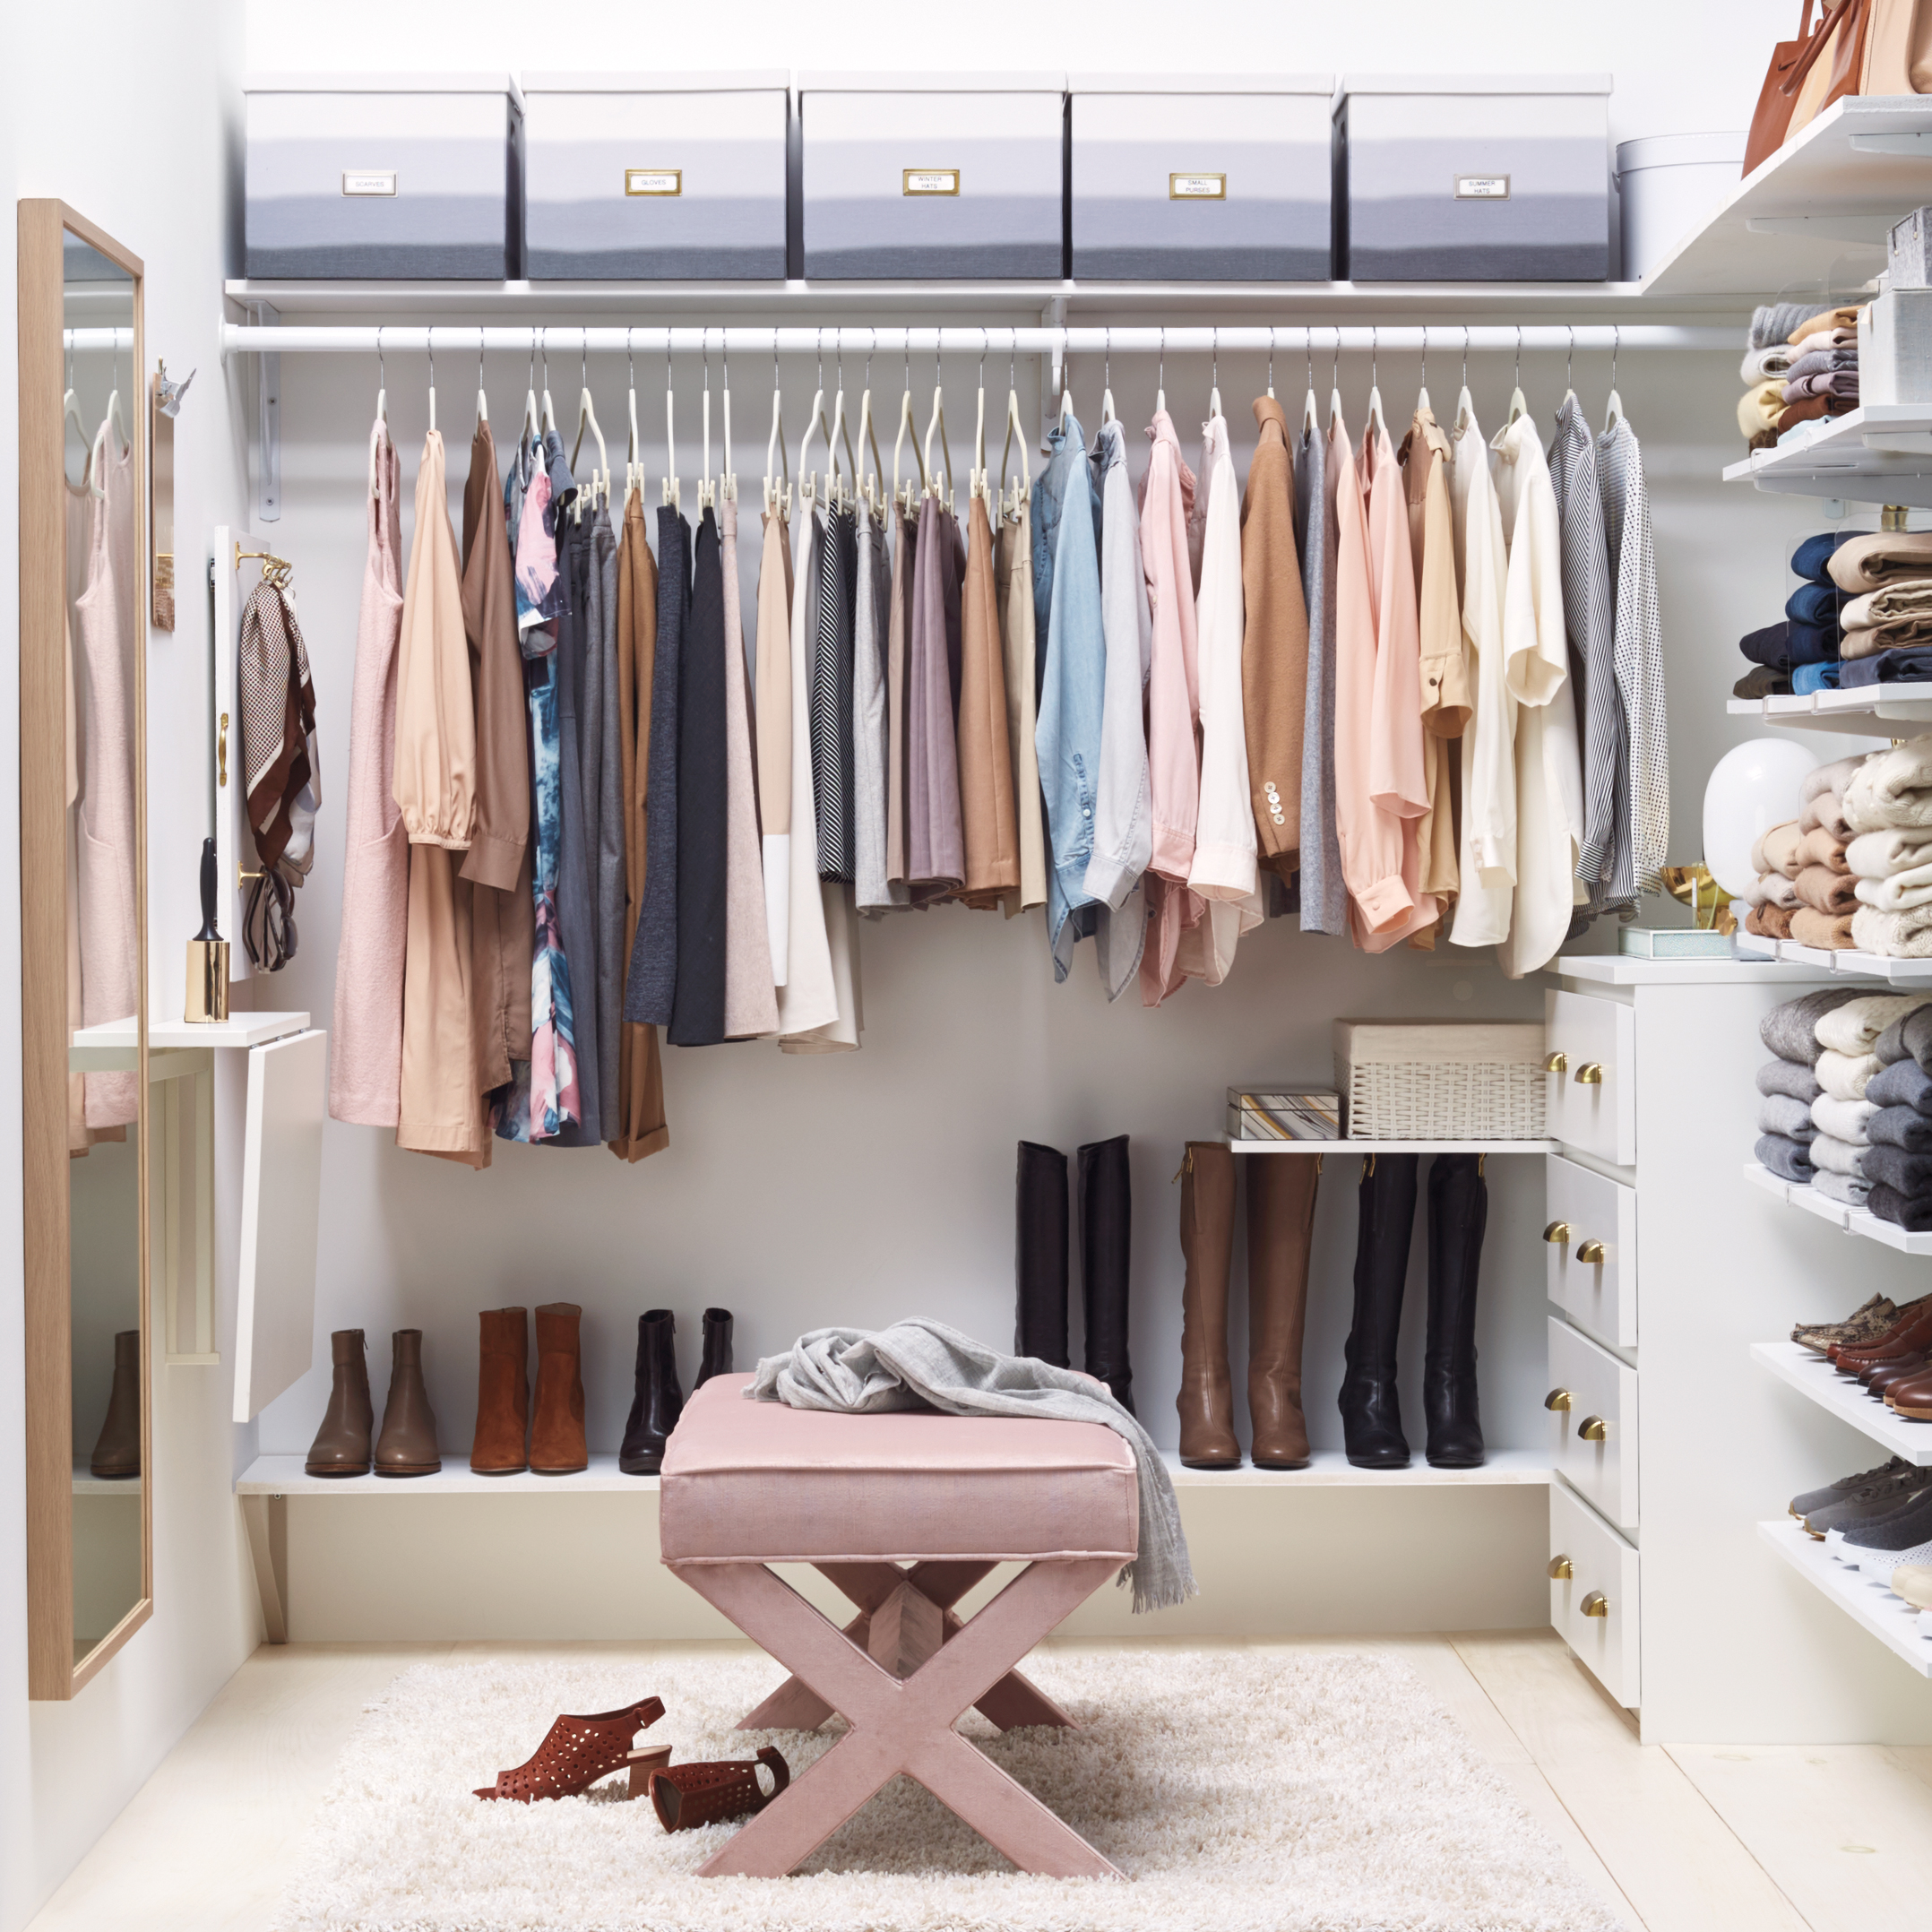 white walk-in closet with pastel-colored clothes hanging